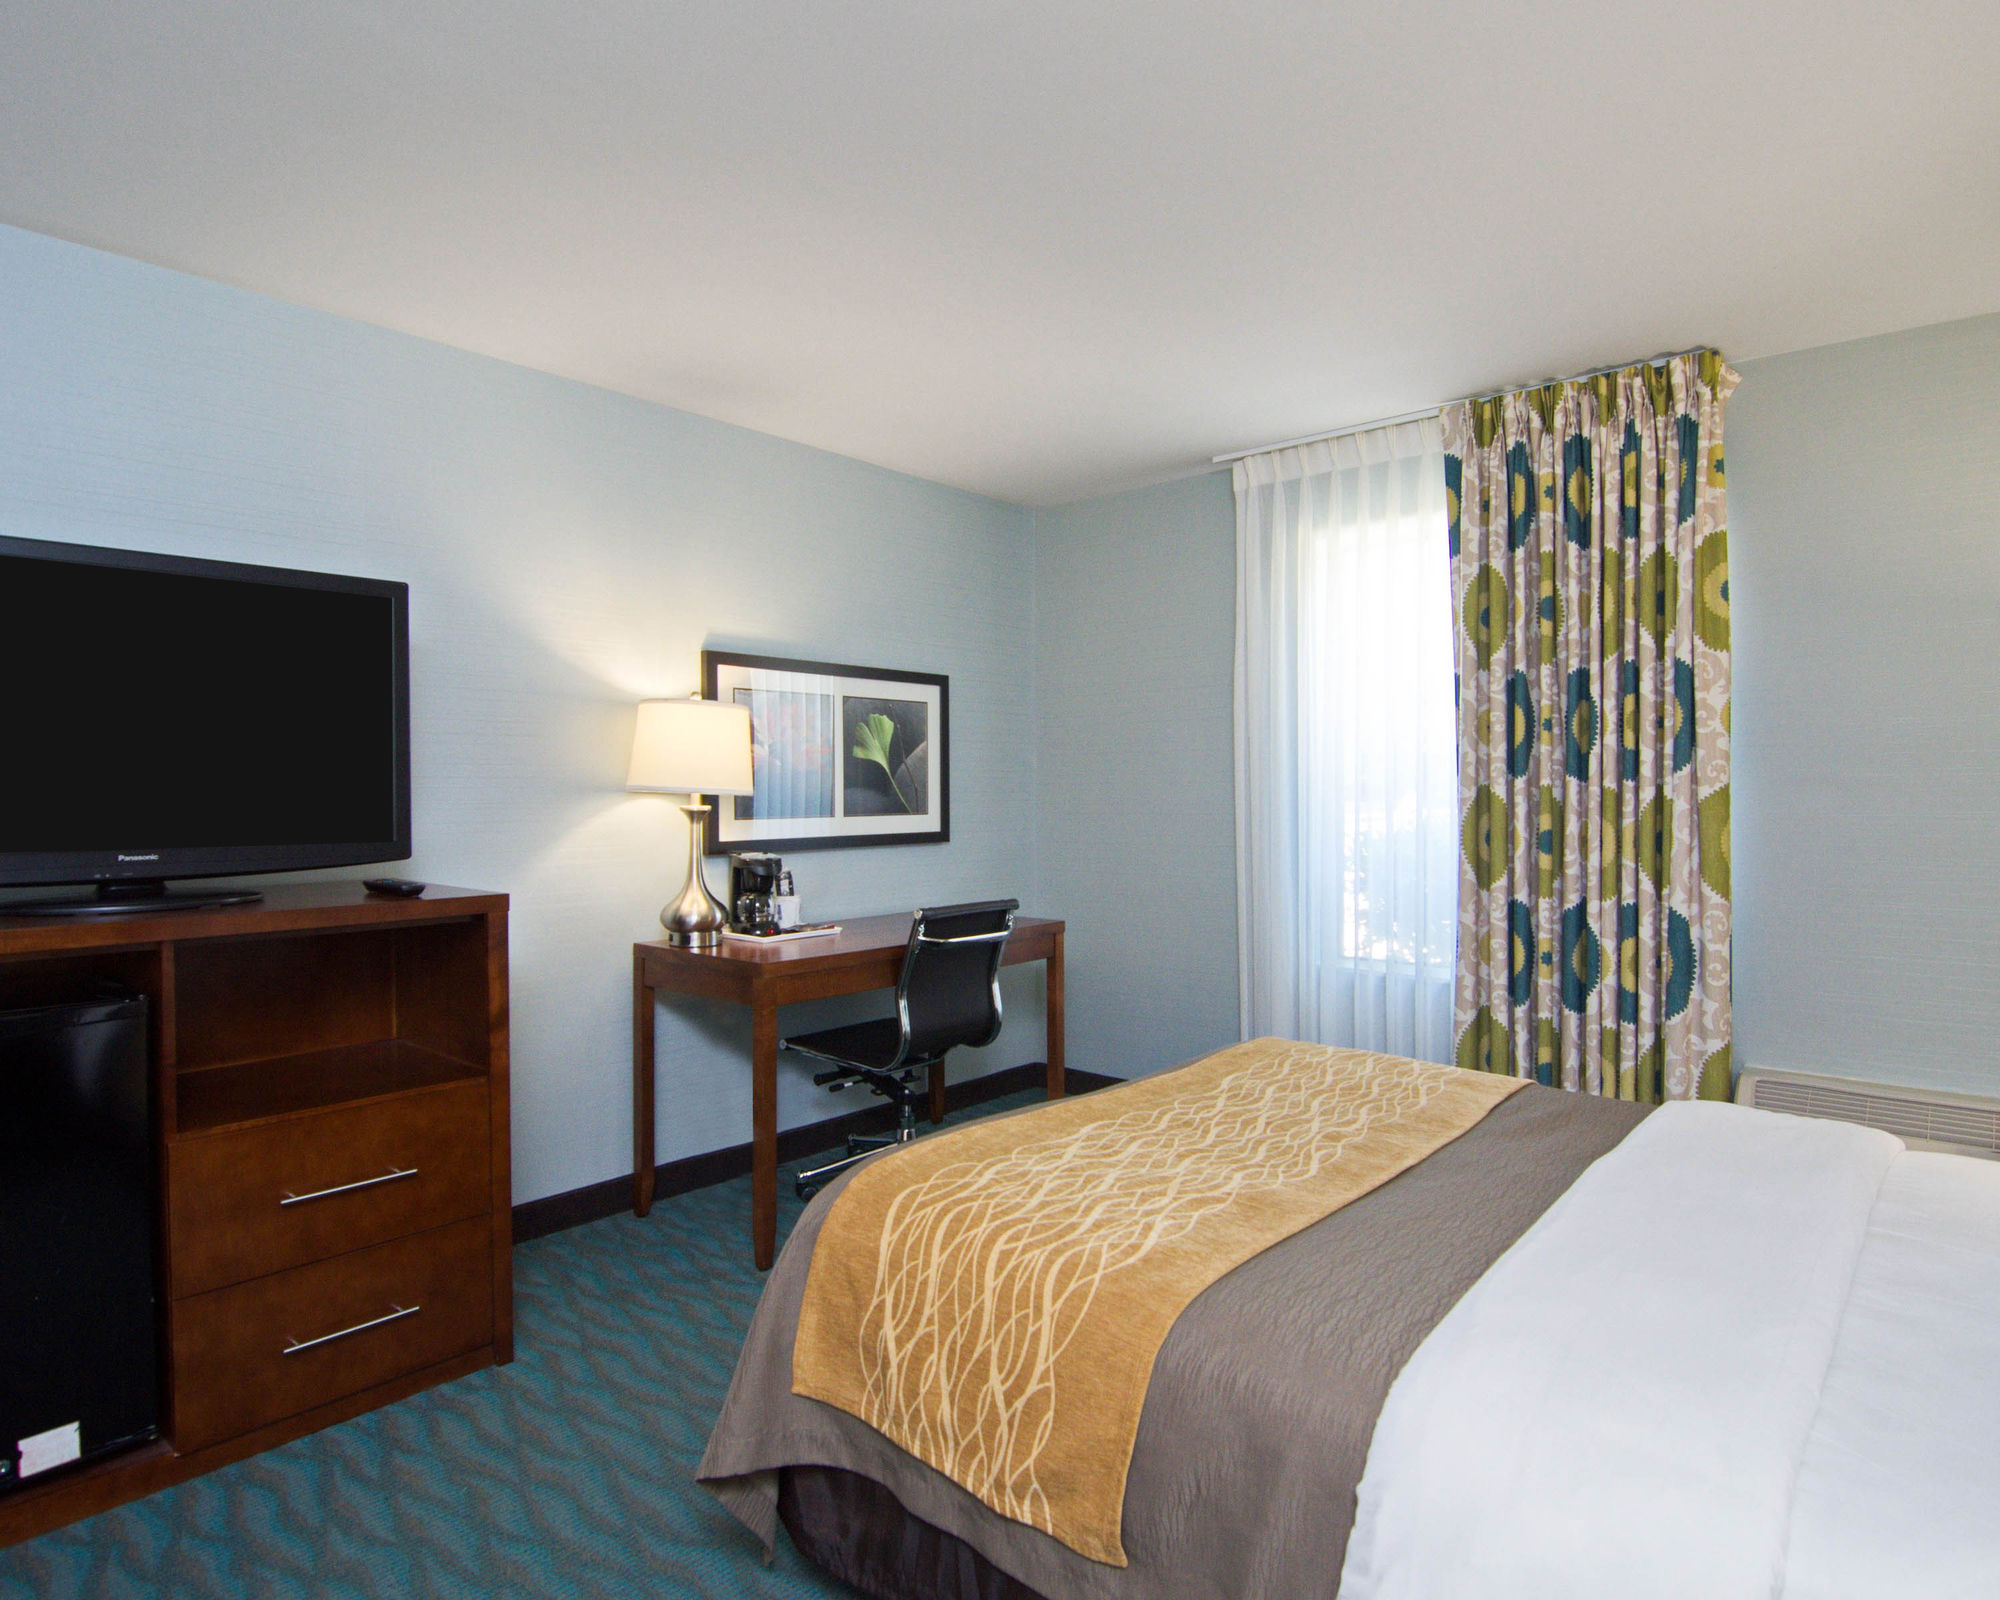 Charlottesville Hotel Coupons For Charlottesville